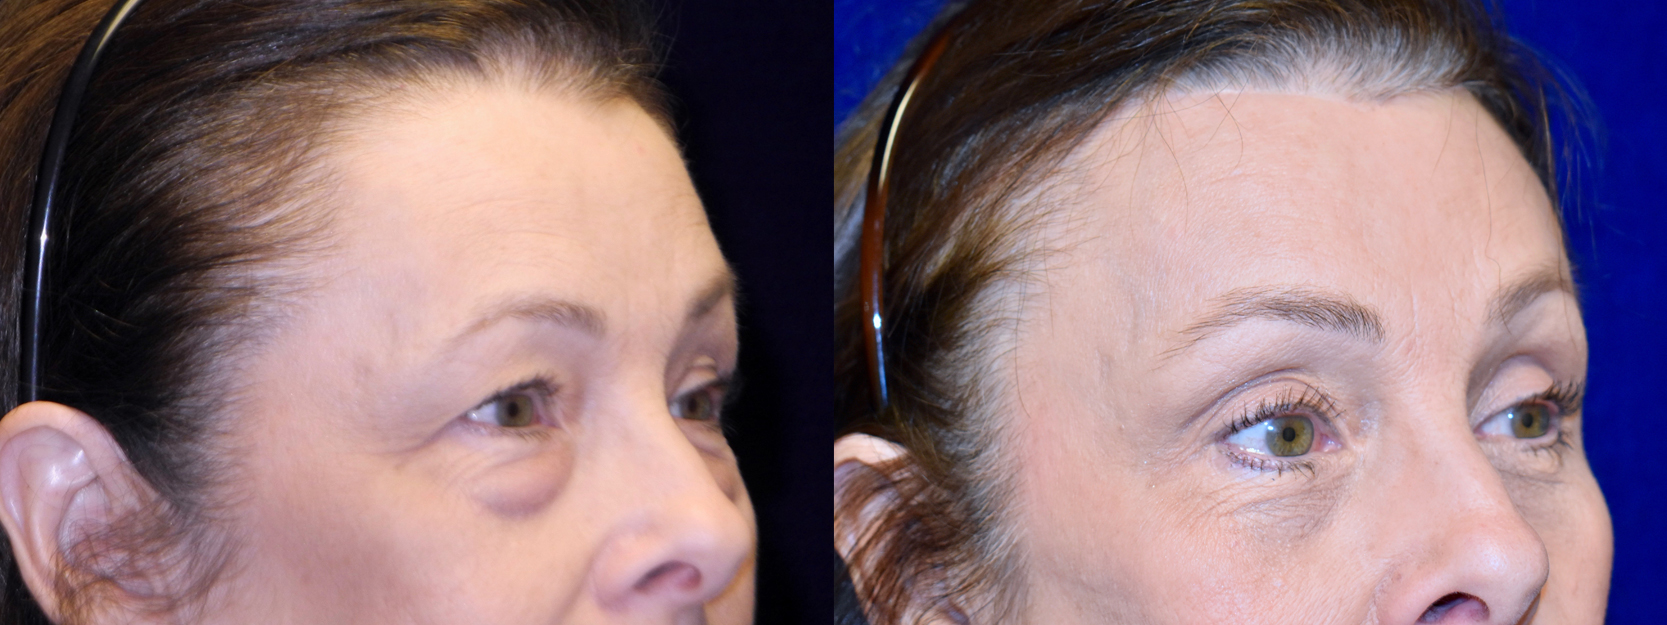 Right 3/4 View - Browlift with Upper and Lower Blepharoplasty